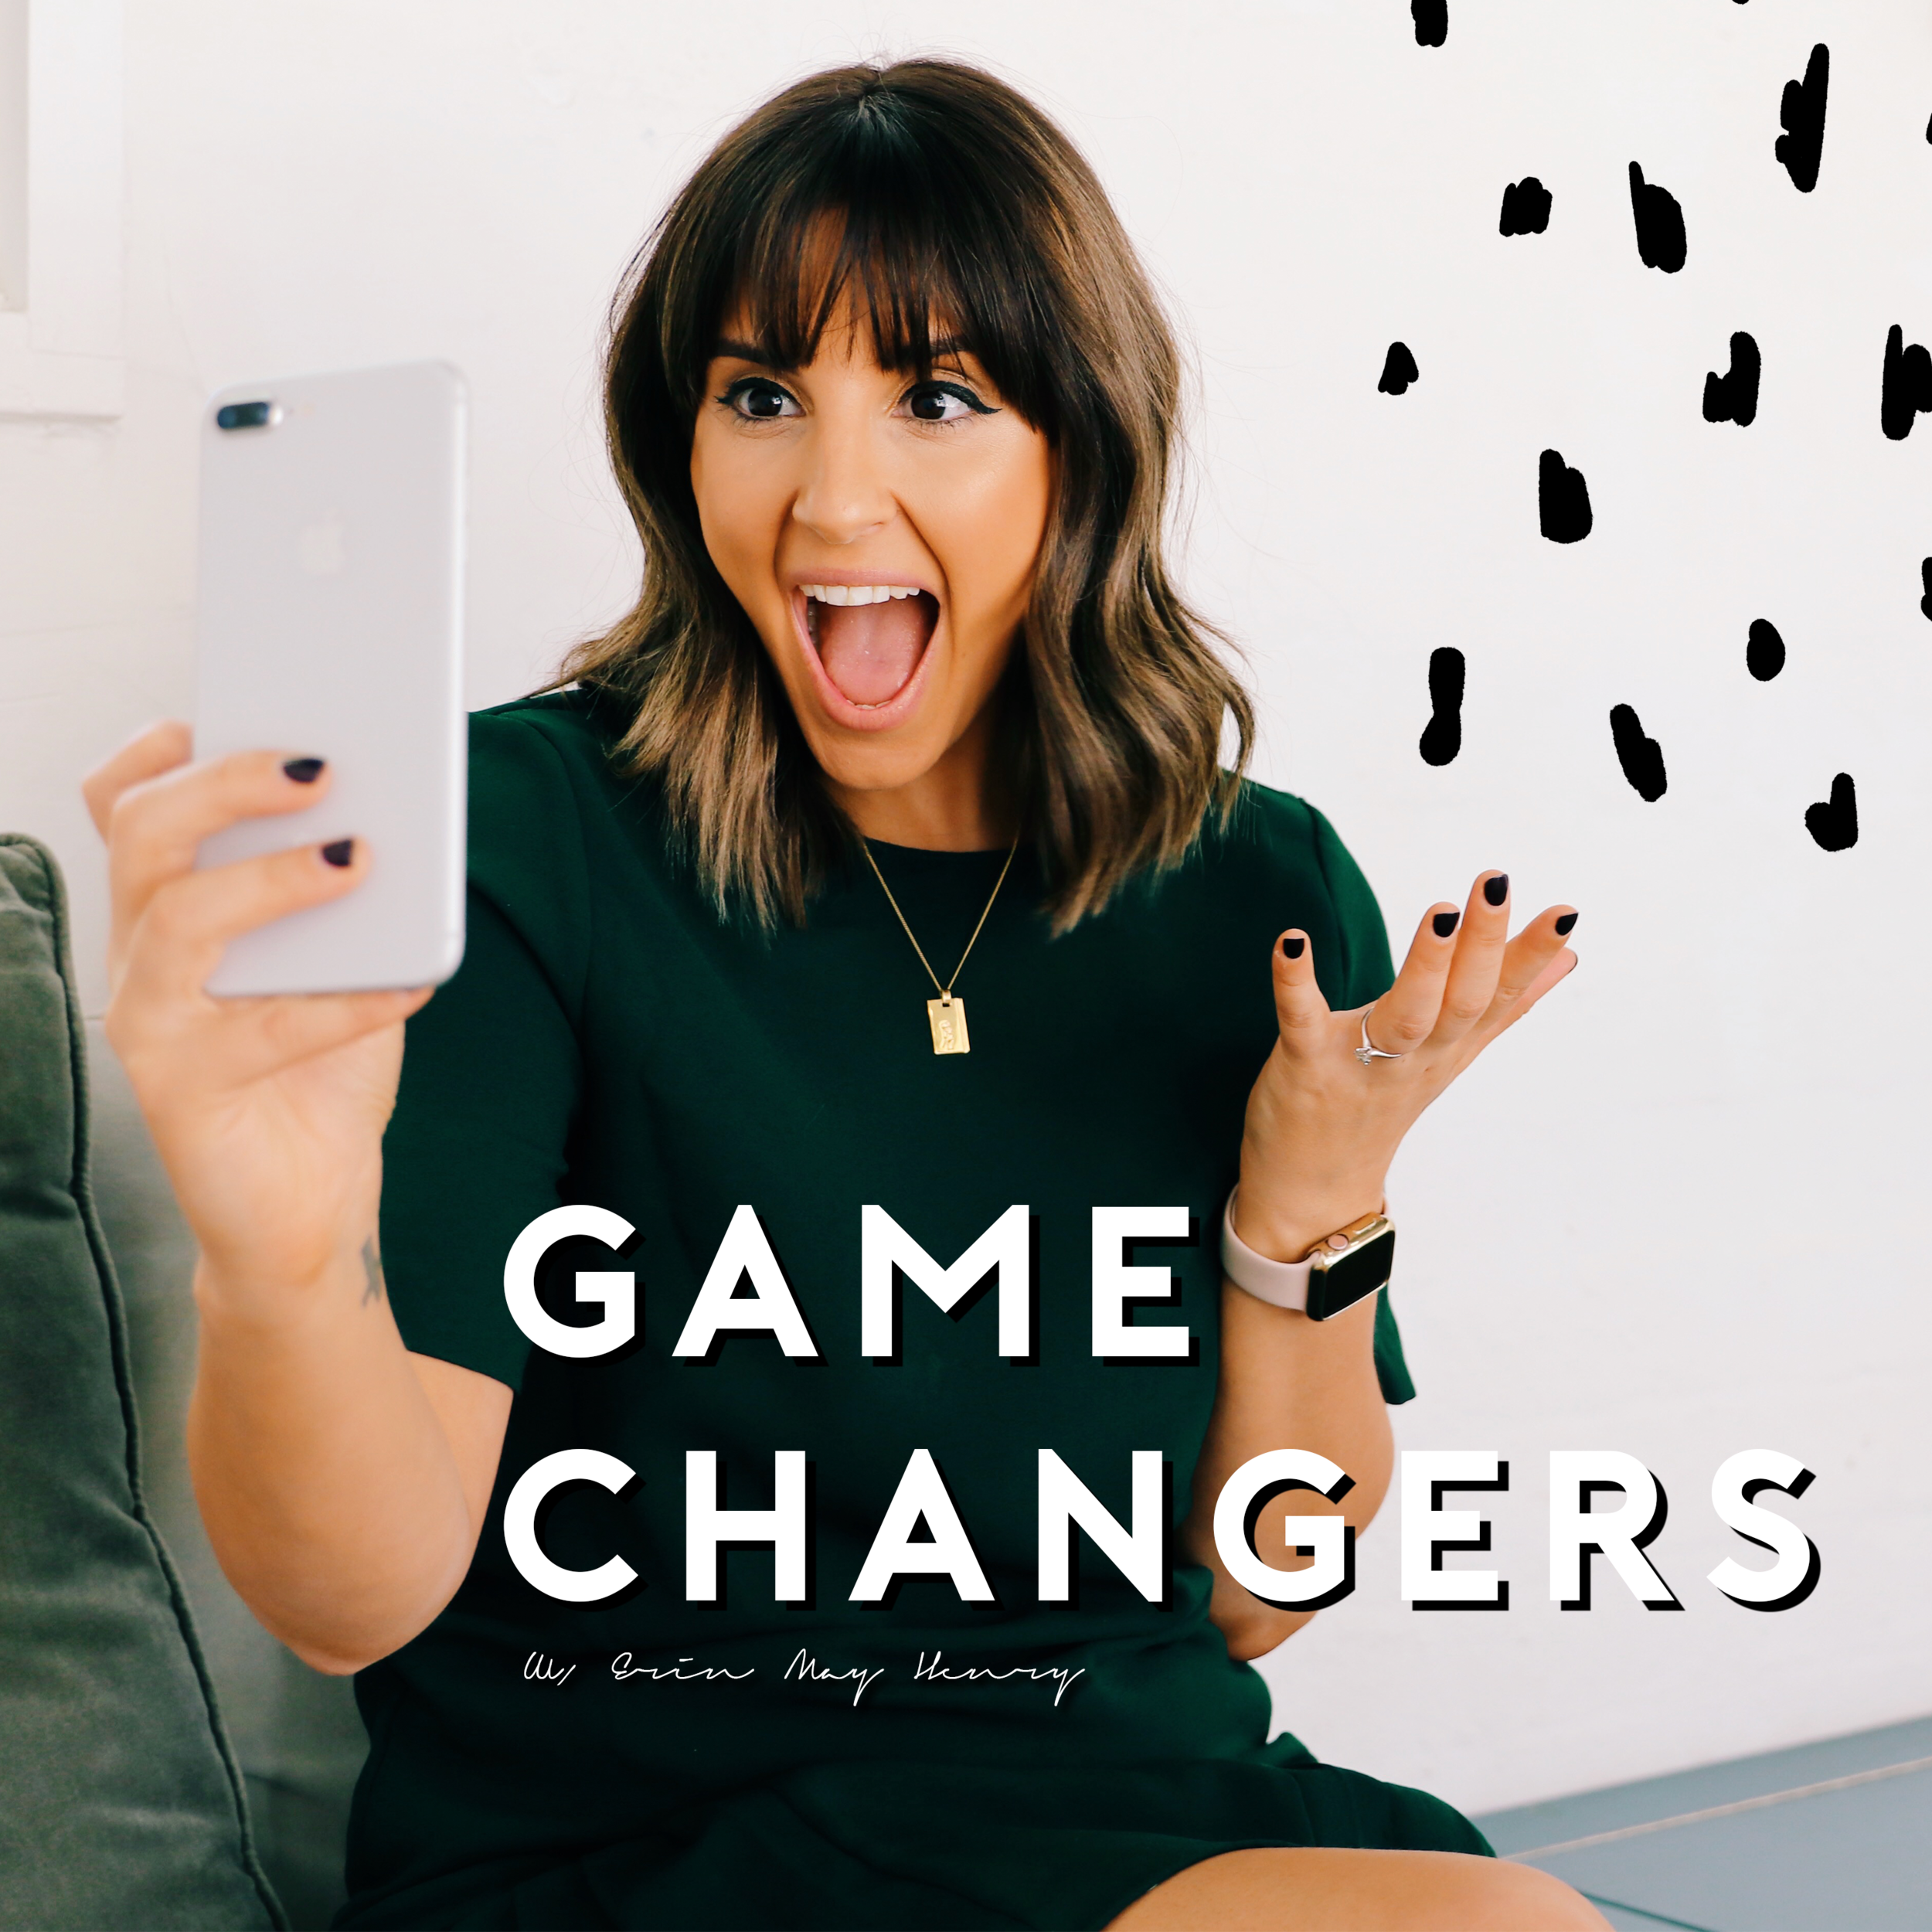 We're back for Season Two! - Be sure to screenshot this episode and share on social media to let us know your thoughts: @gamechangercompany @erinmayhenry @galadarling